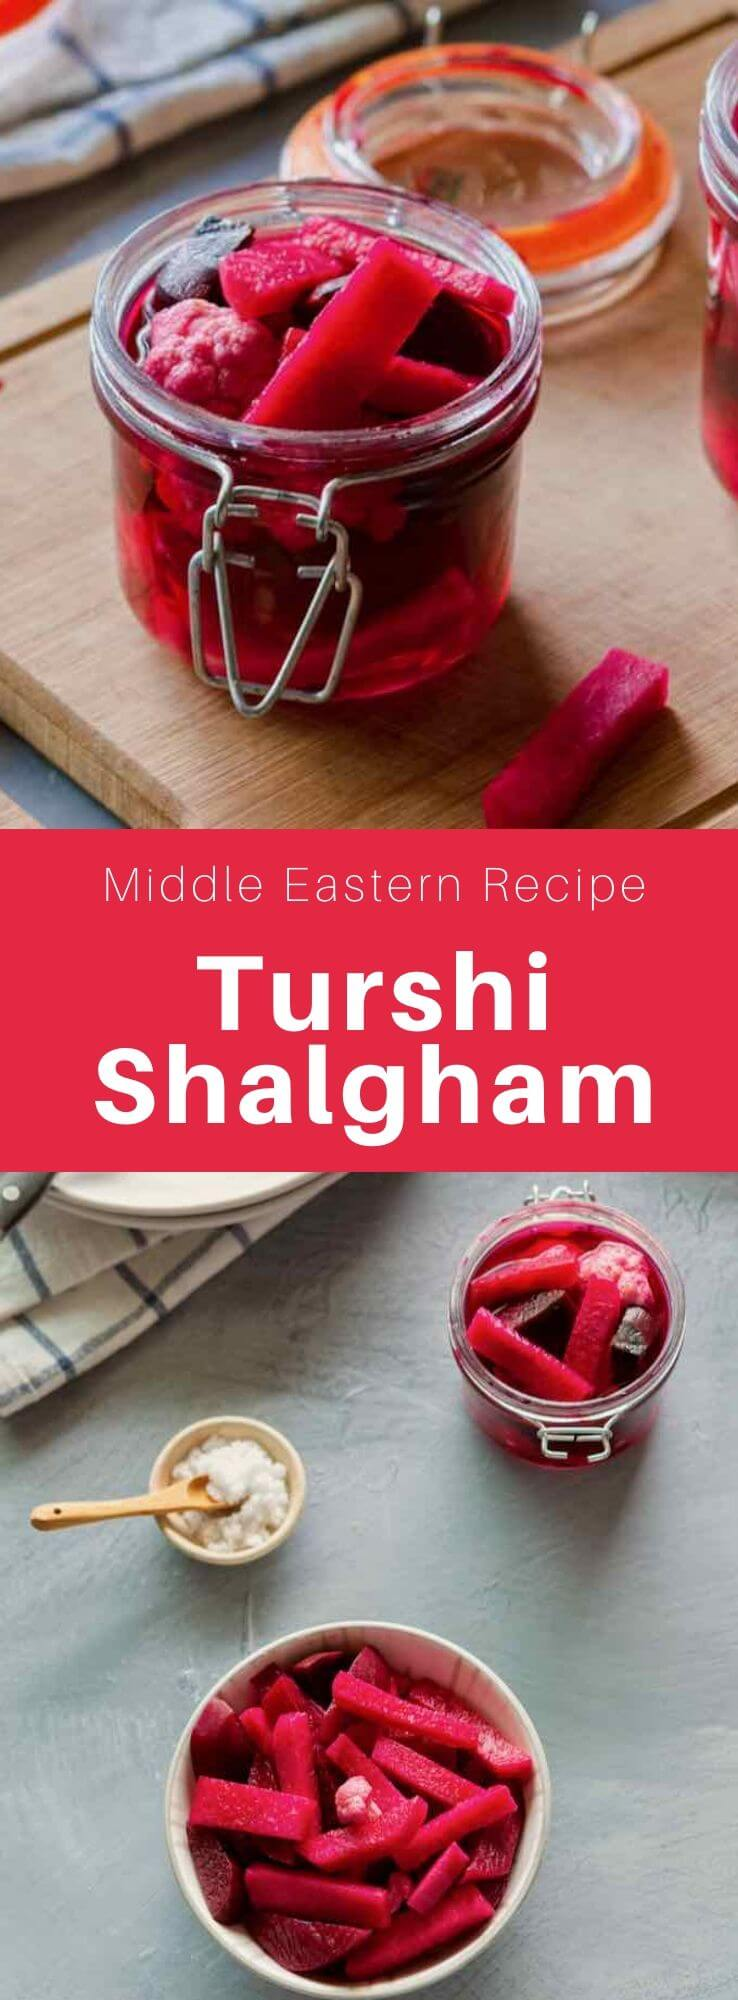 Turshi shalgham is a traditional Iraqi variety of pickles mainly made from pickled turnip and topped with cauliflower and beetroot. #MiddleEast #MiddleEastern #Iraq #IraqiCuisine #IraqiRecipe #WorldCuisine #196flavors